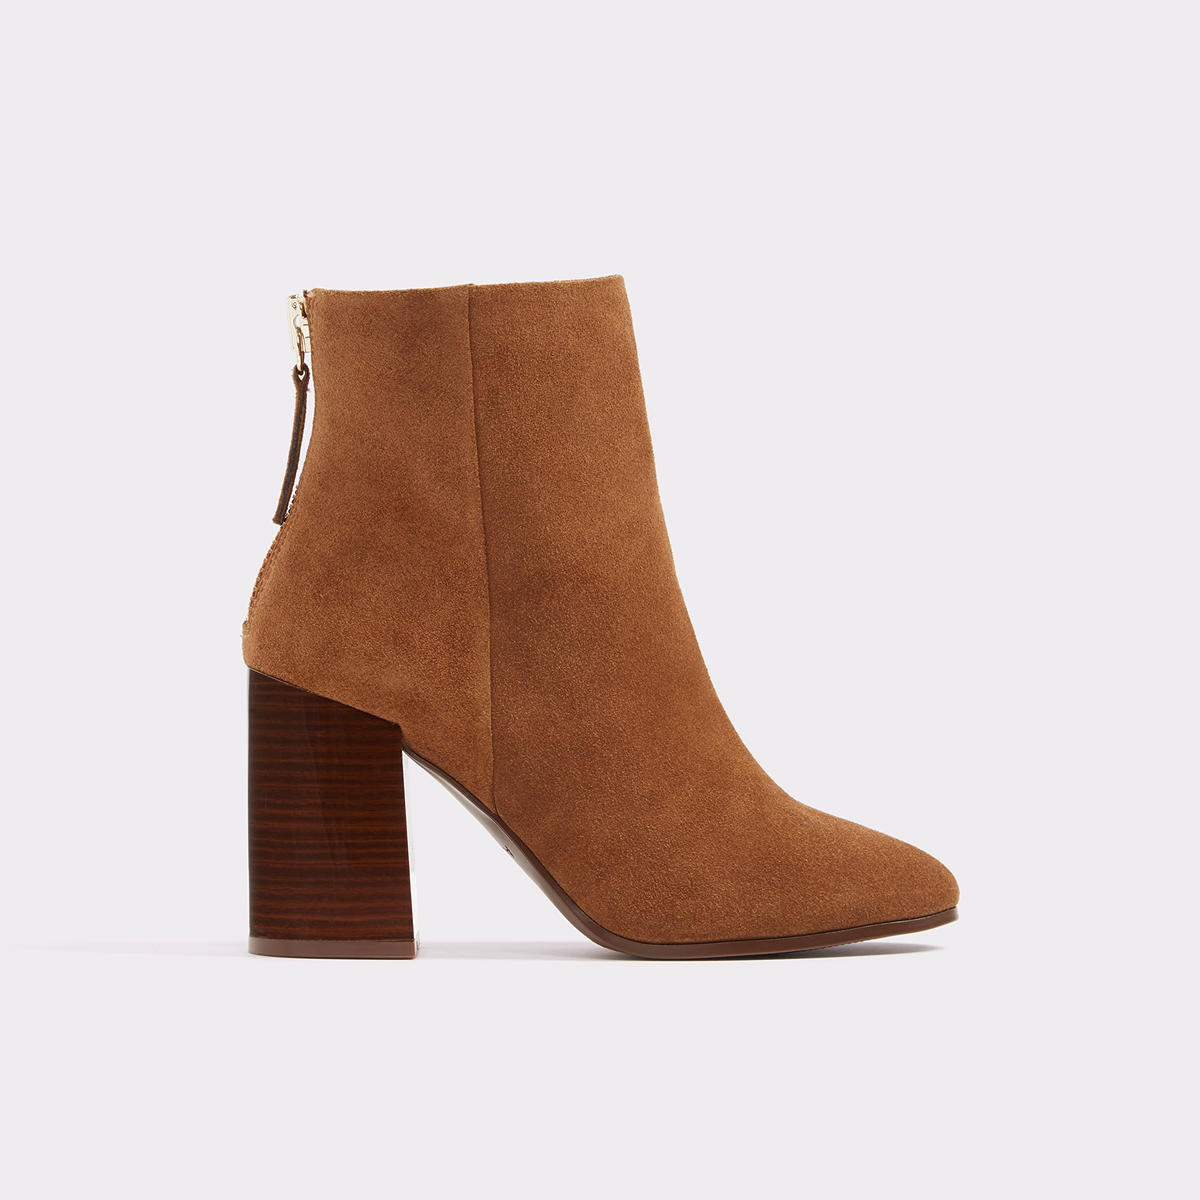 Hola ankle boots